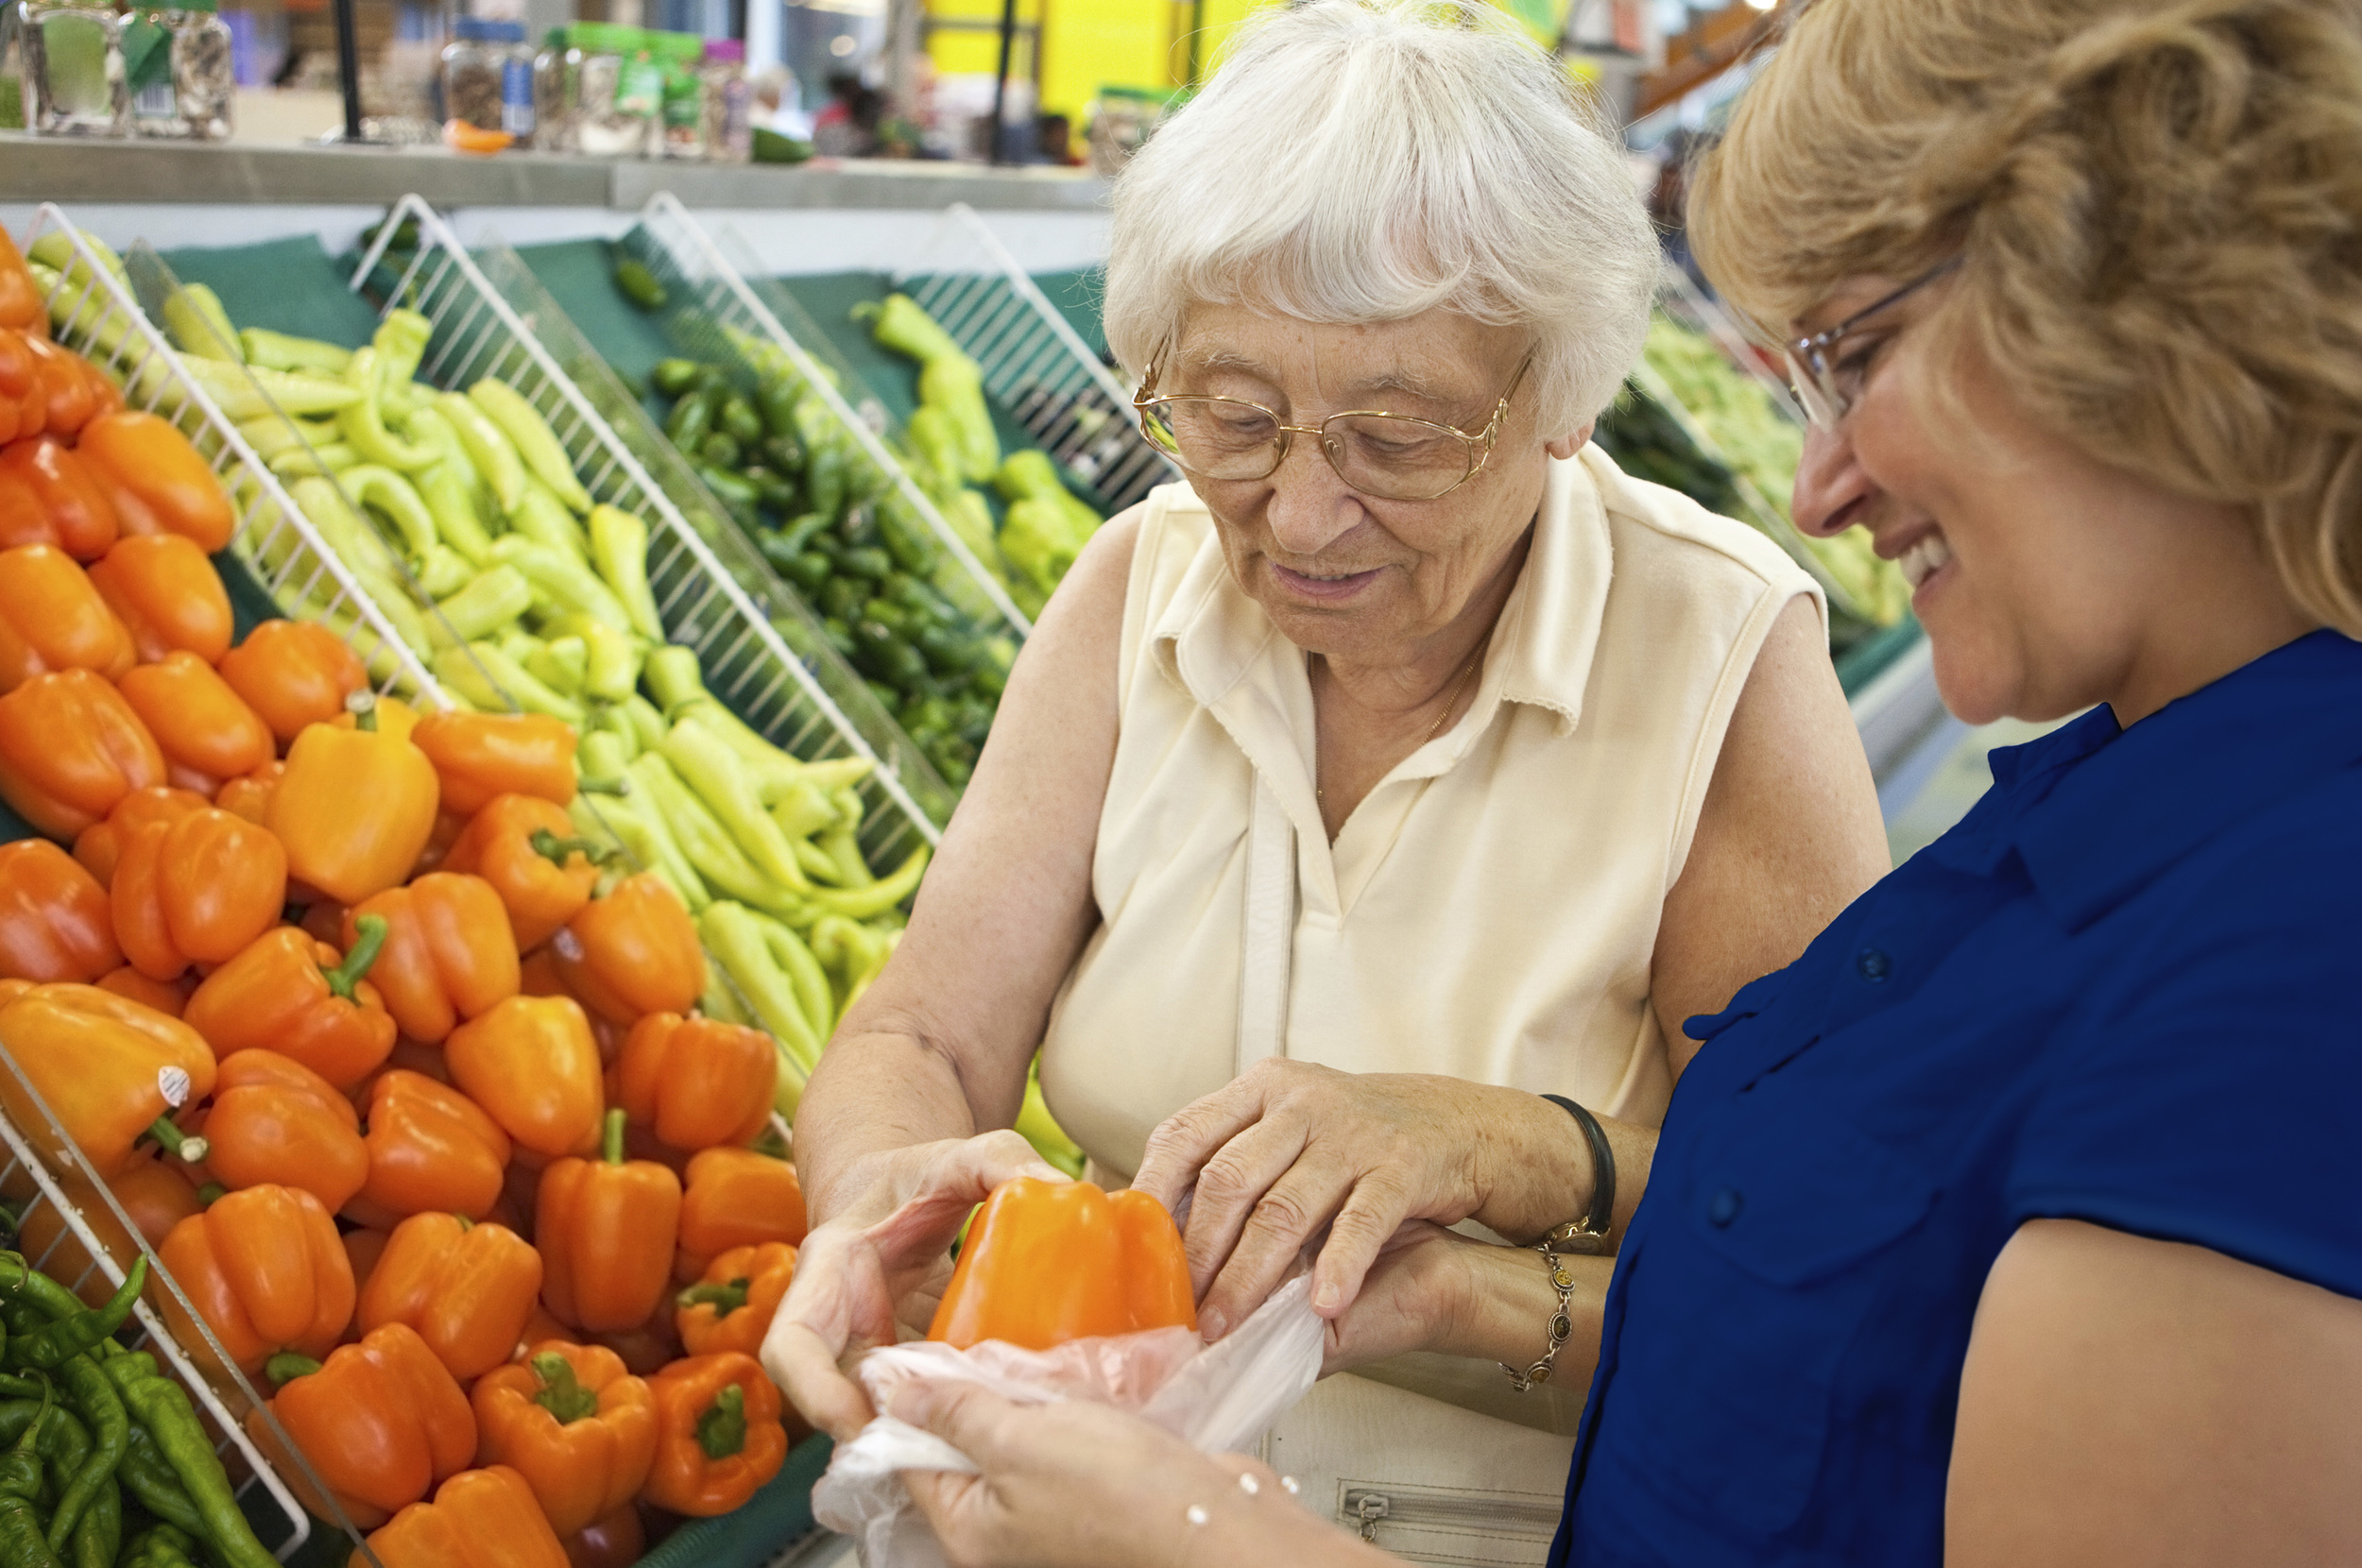 Assurance Home Care Nurse grovery shopping with patient